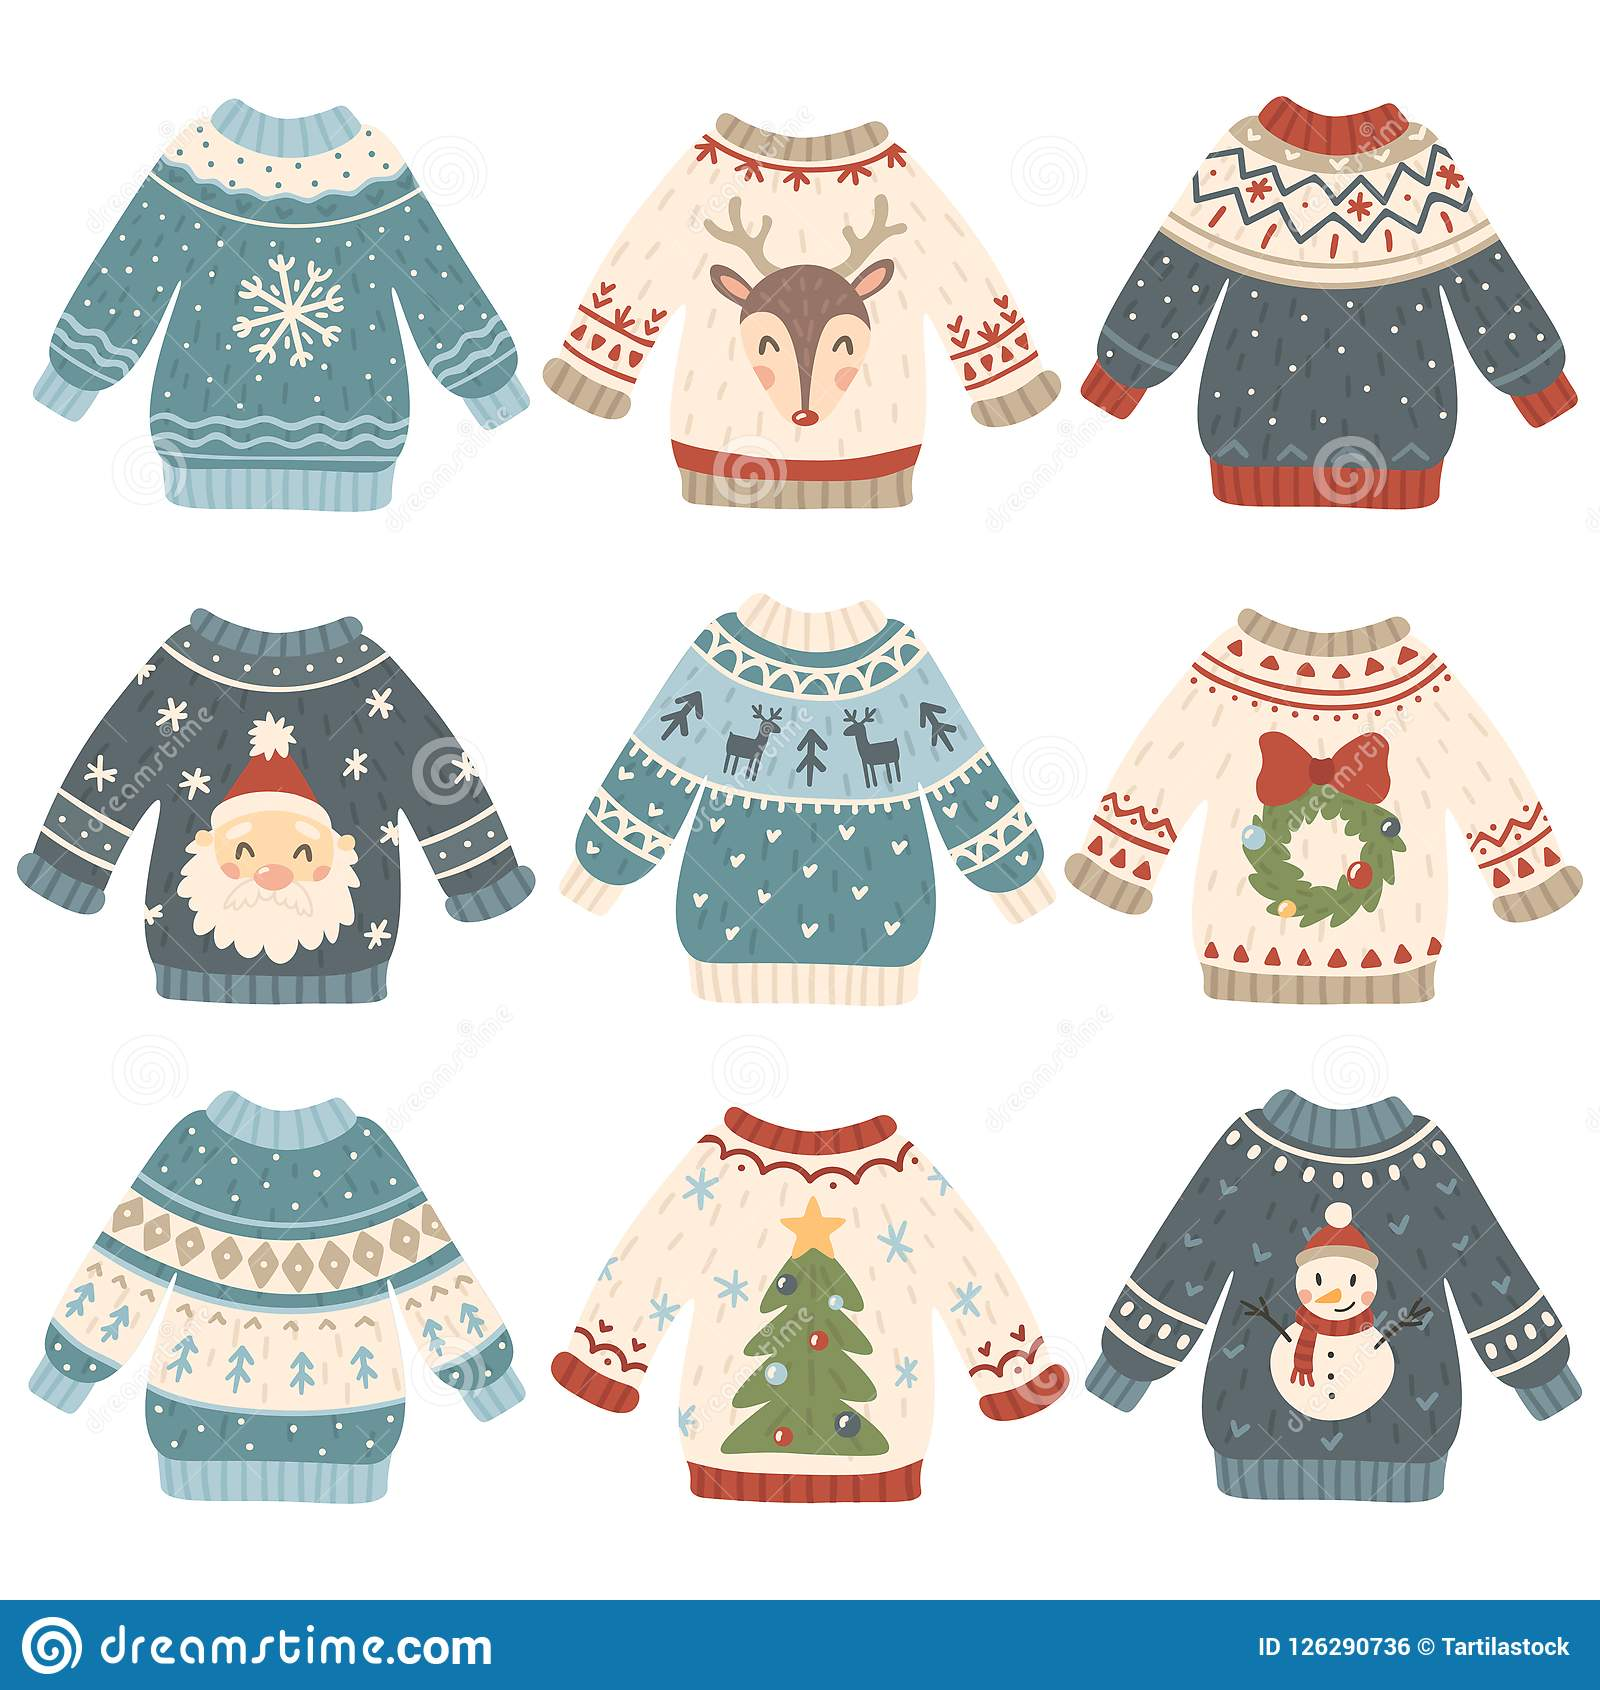 8efa7697d Ugly christmas sweaters. Cartoon cute wool jumper. Knitted tacky winter  holidays sweater pullover with funny snowman